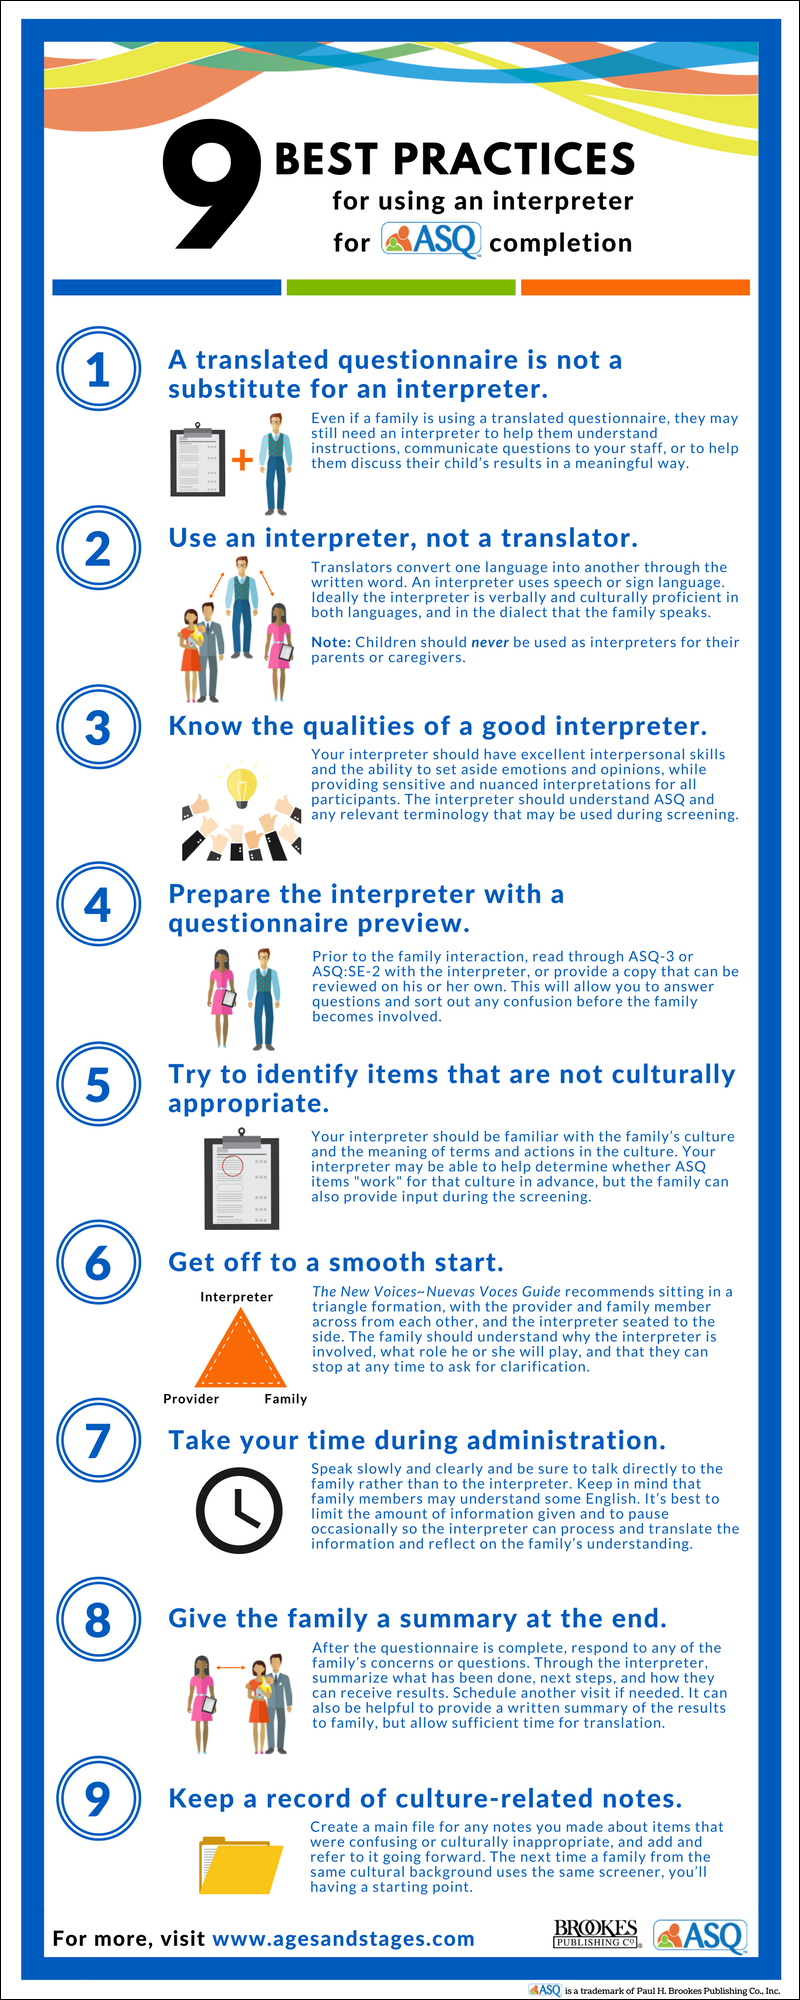 Best practices for using an interpreter for ASQ completion infographic